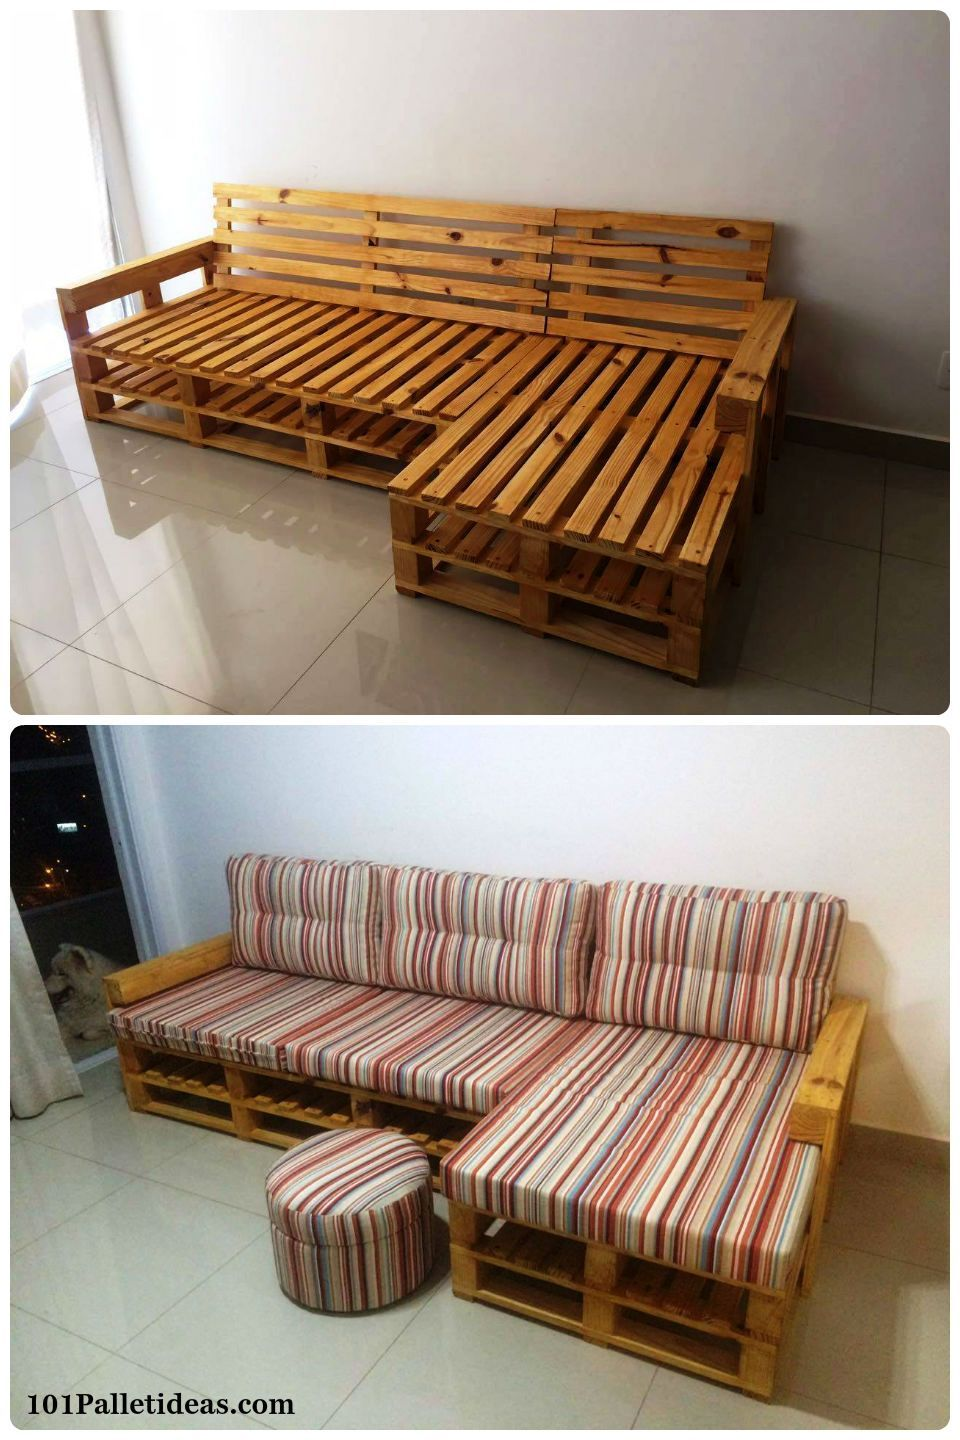 20 pallet ideas you can diy for your home pinterest